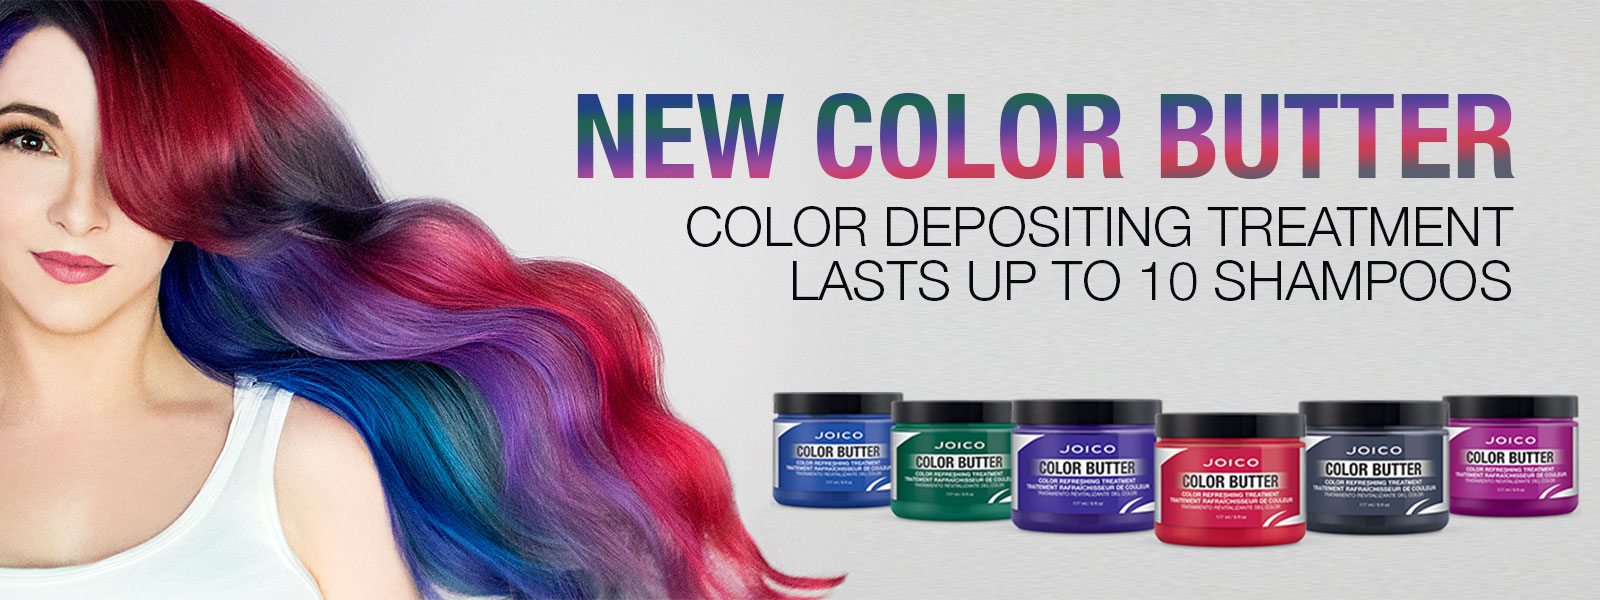 Color Butter - Joico - Hairstation - Rumst